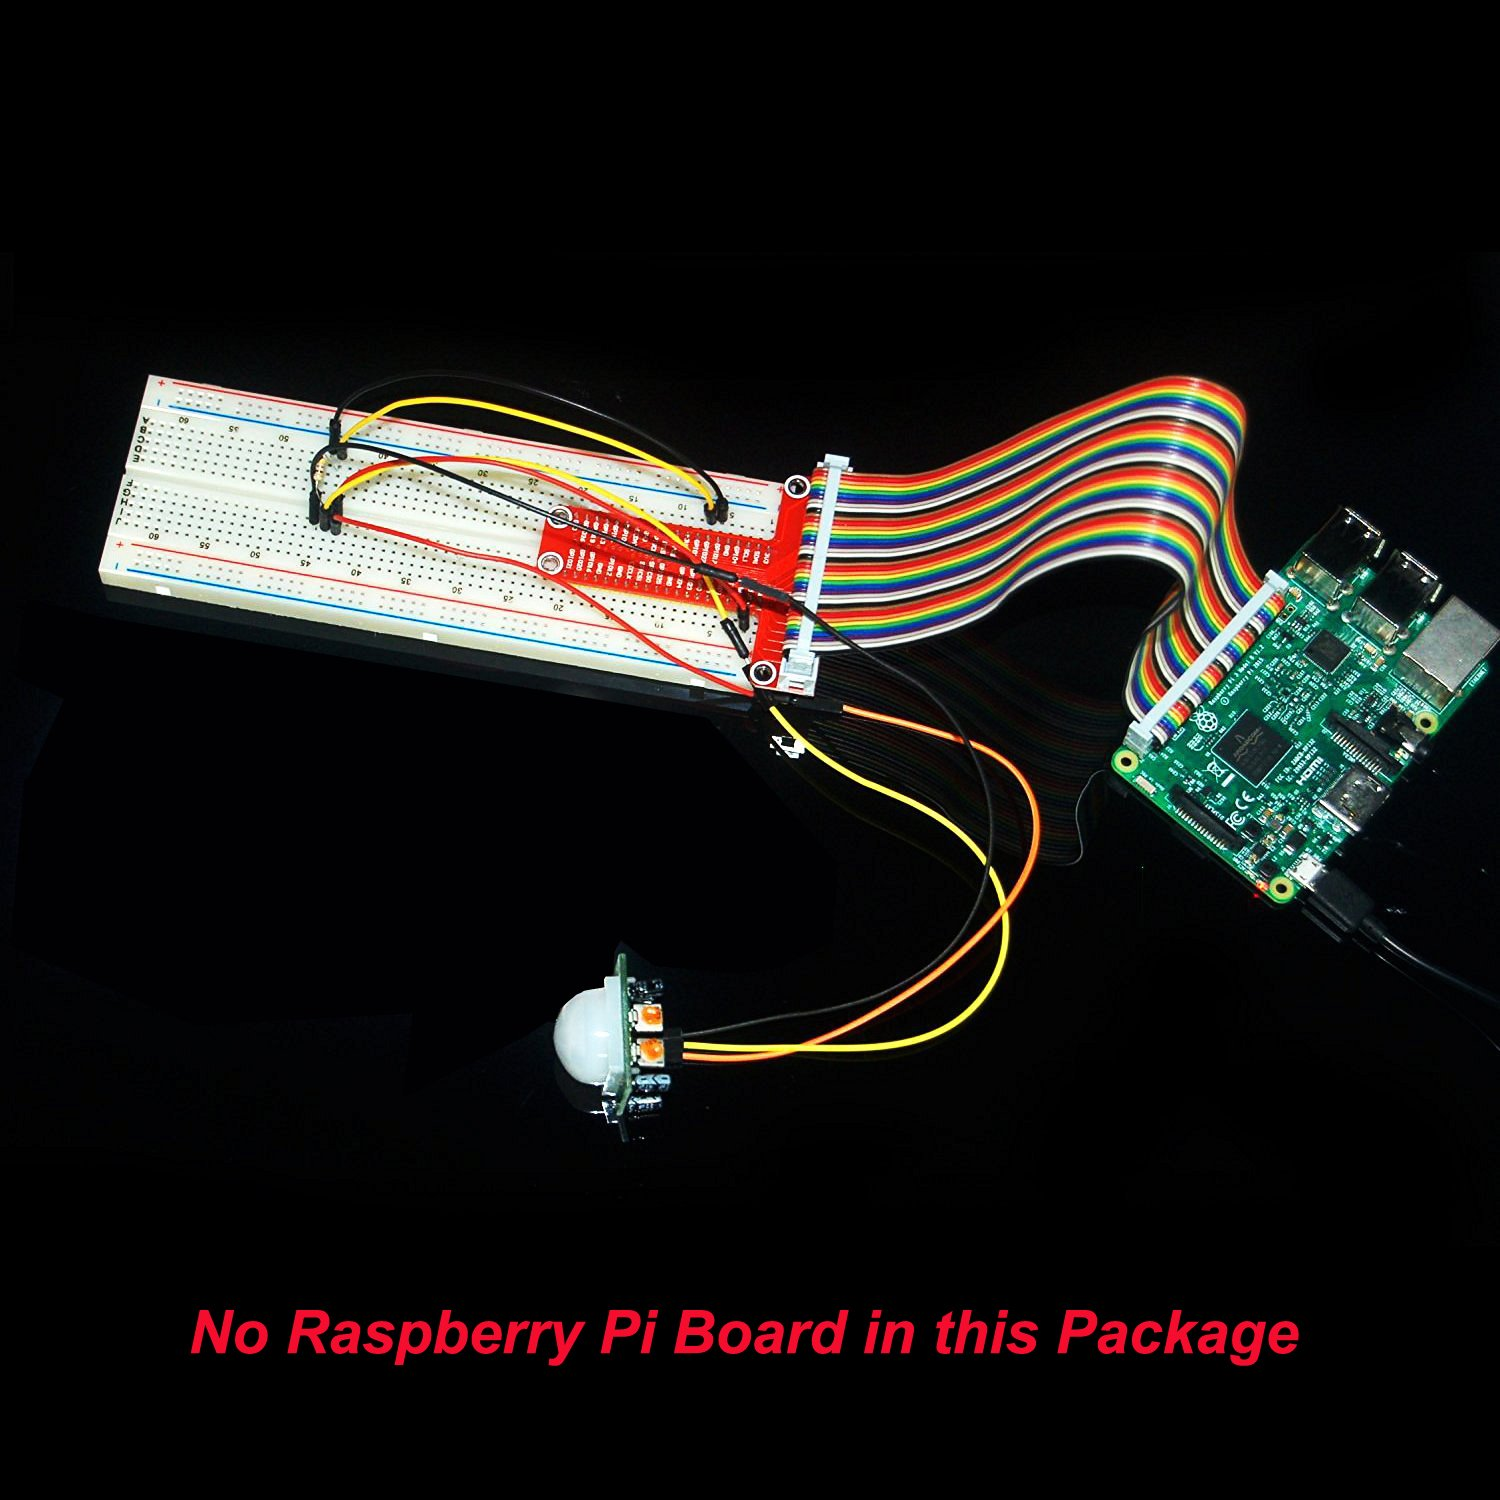 Osoyoo Raspberry Pi 3 Zero W Diy Basic Starter Learning Need Help With My Game Show Buzzer Electronics Forum Circuits Kit 2018 Updated For Beginners Home Improvement